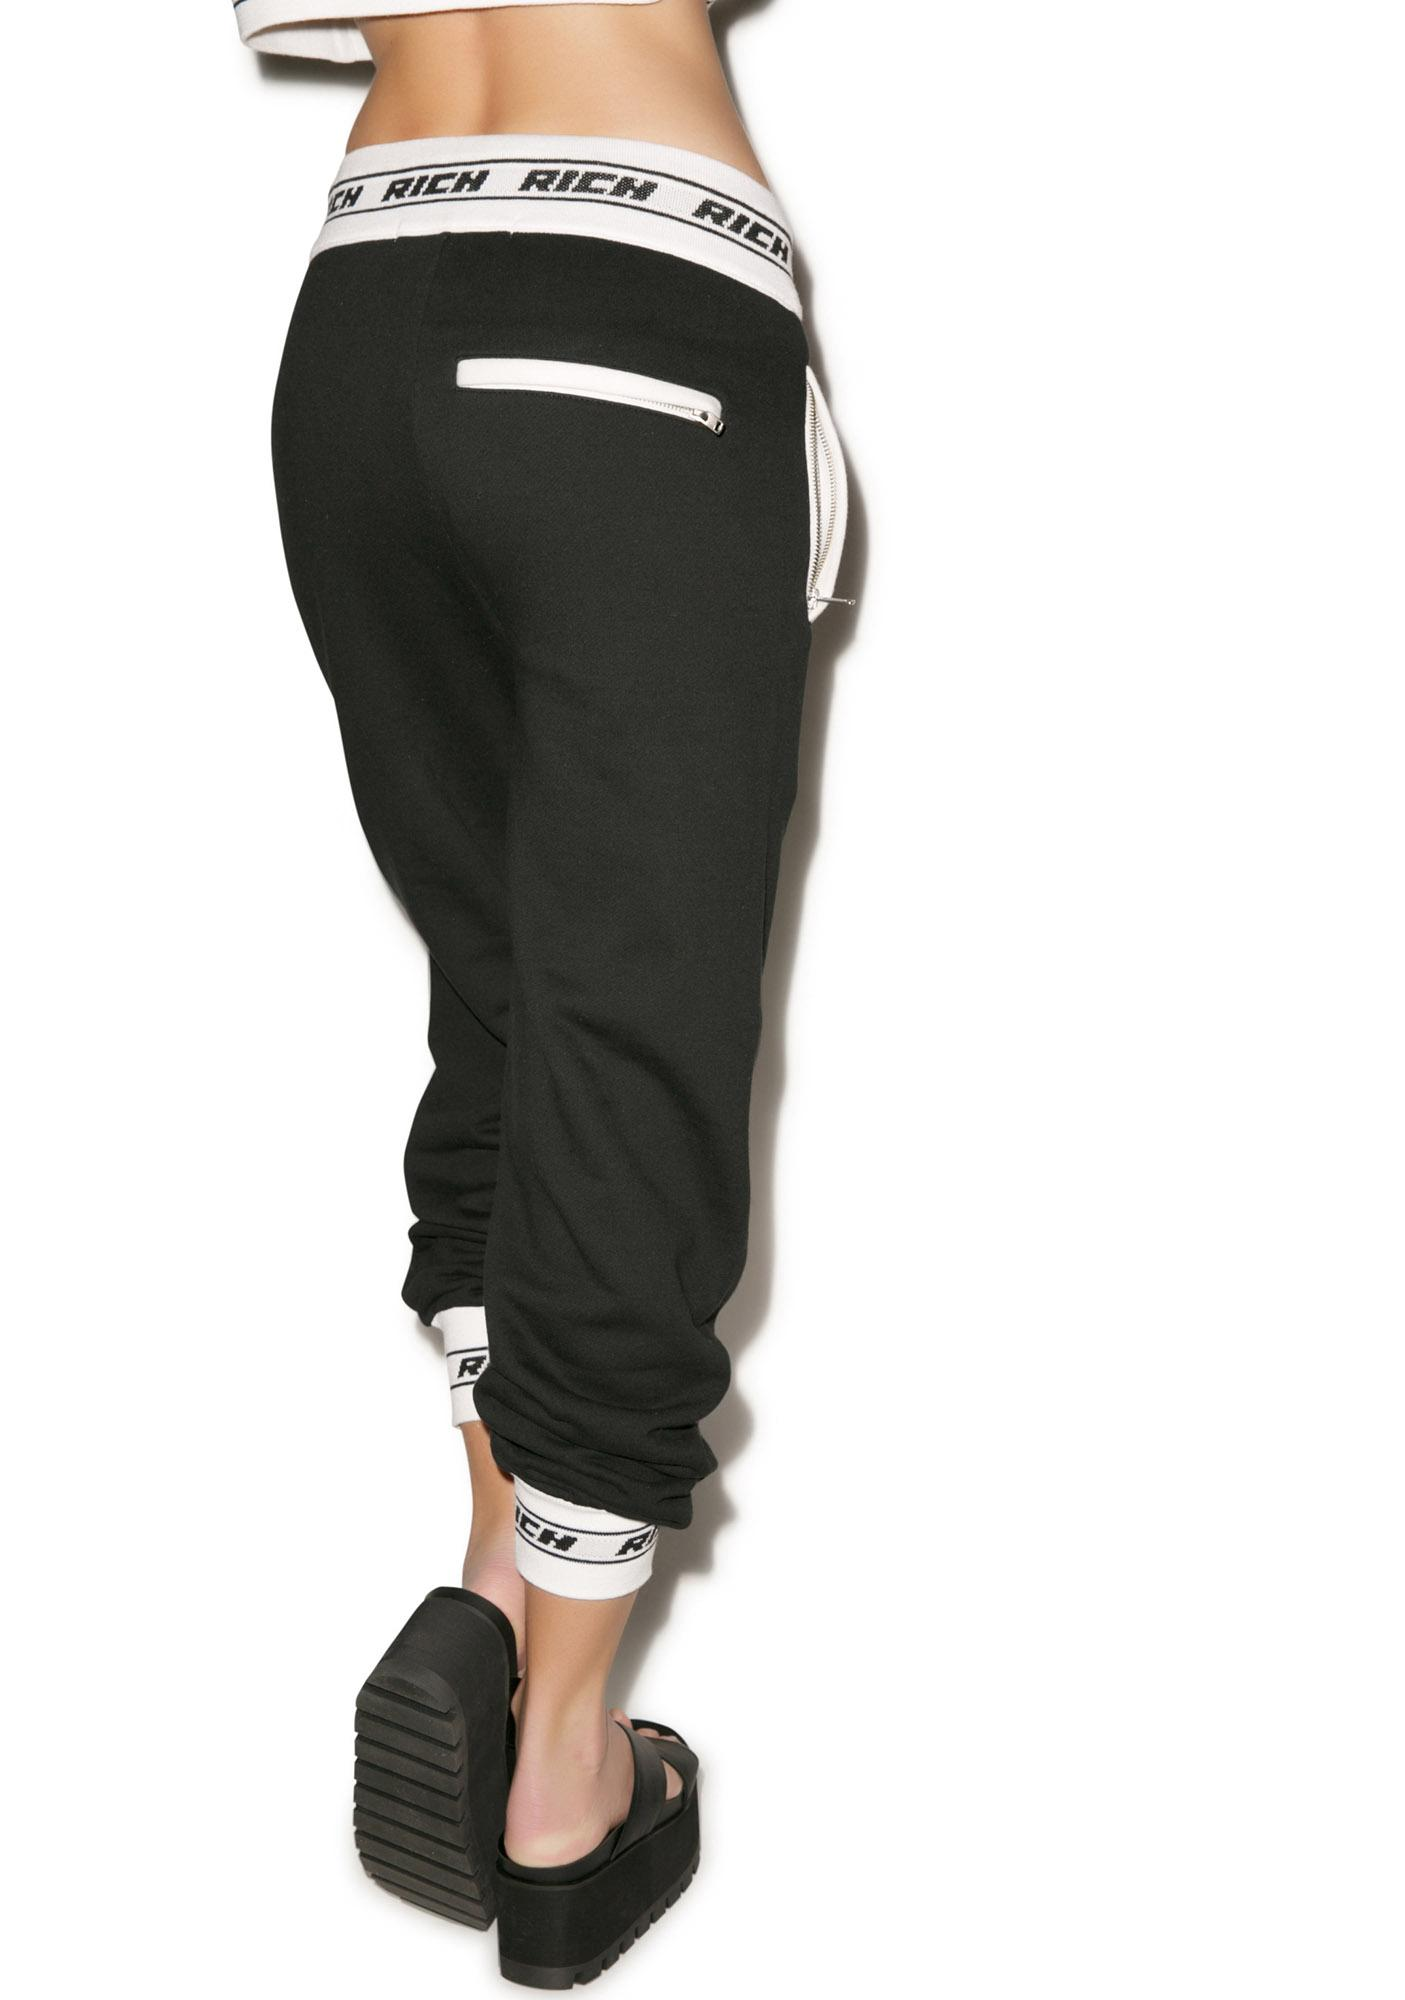 Joyrich Rich Band Sweatpants